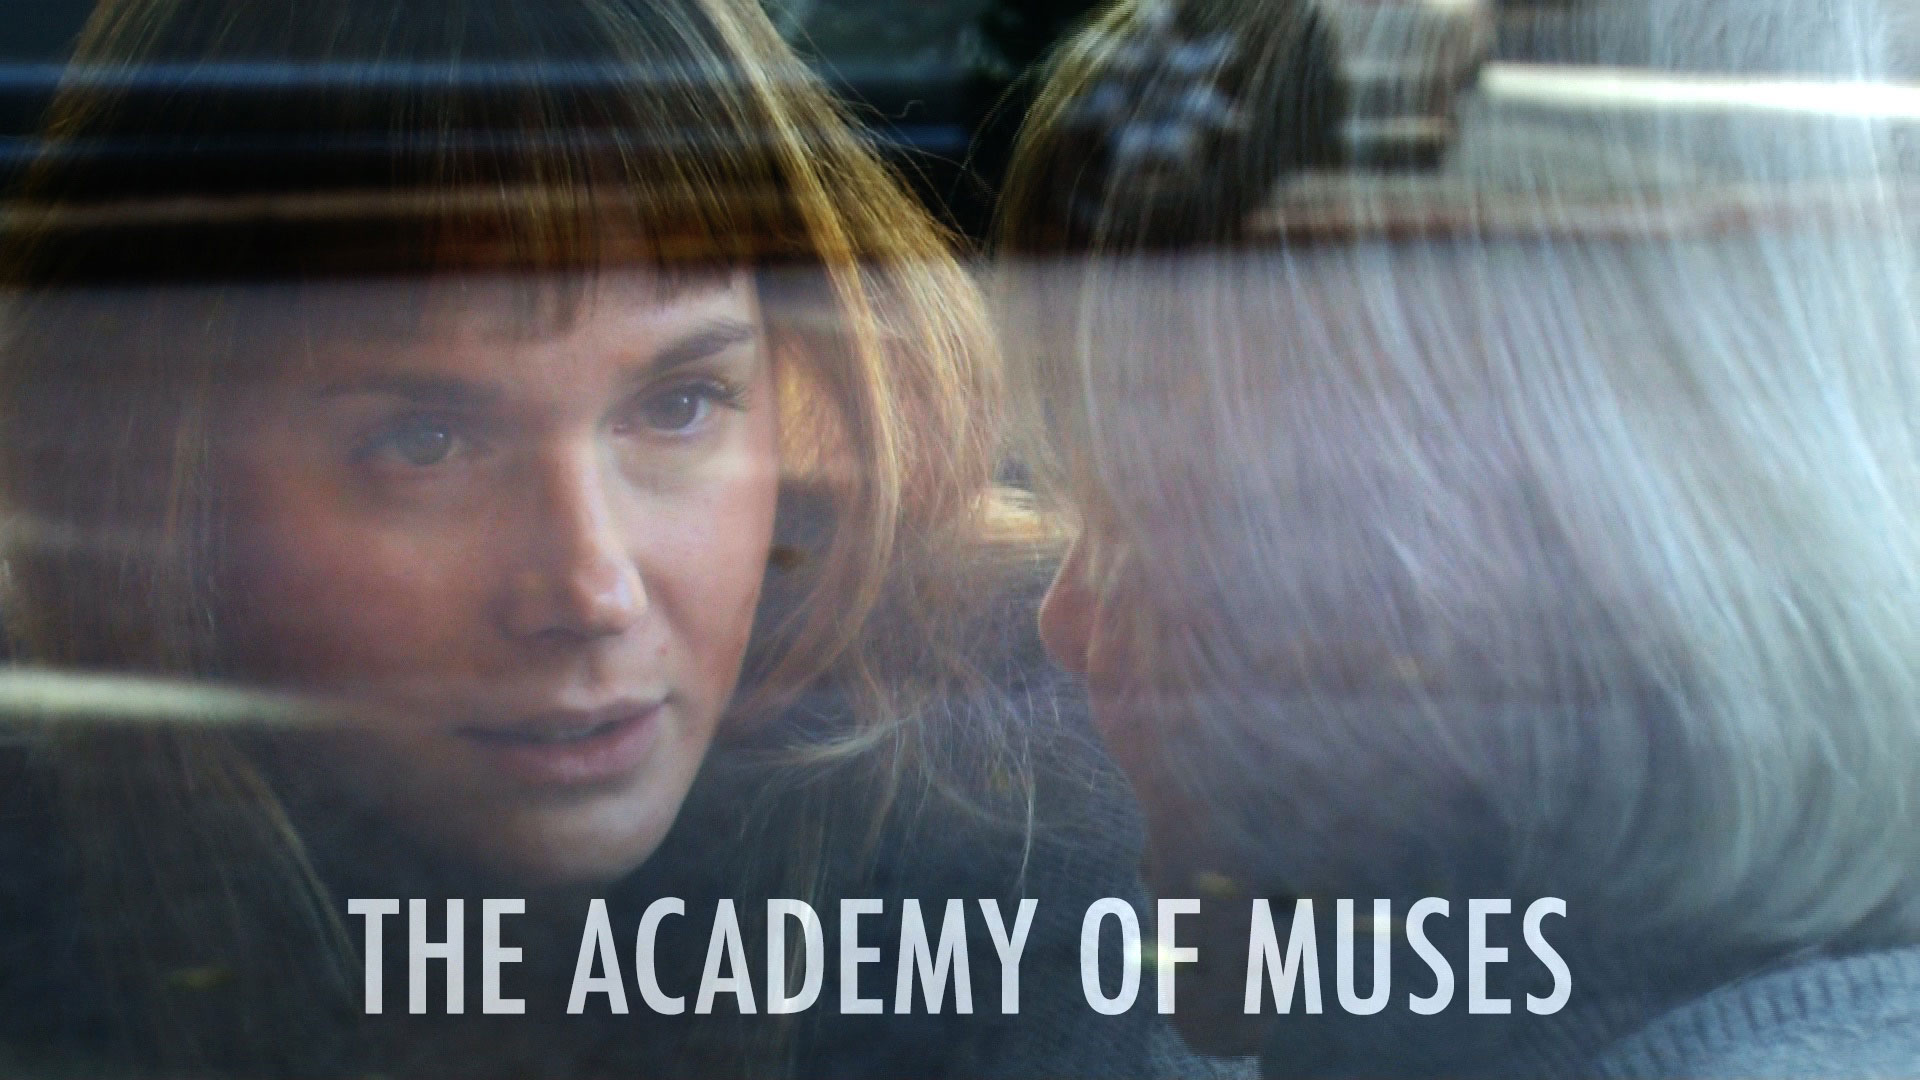 The Academy of Muses - image